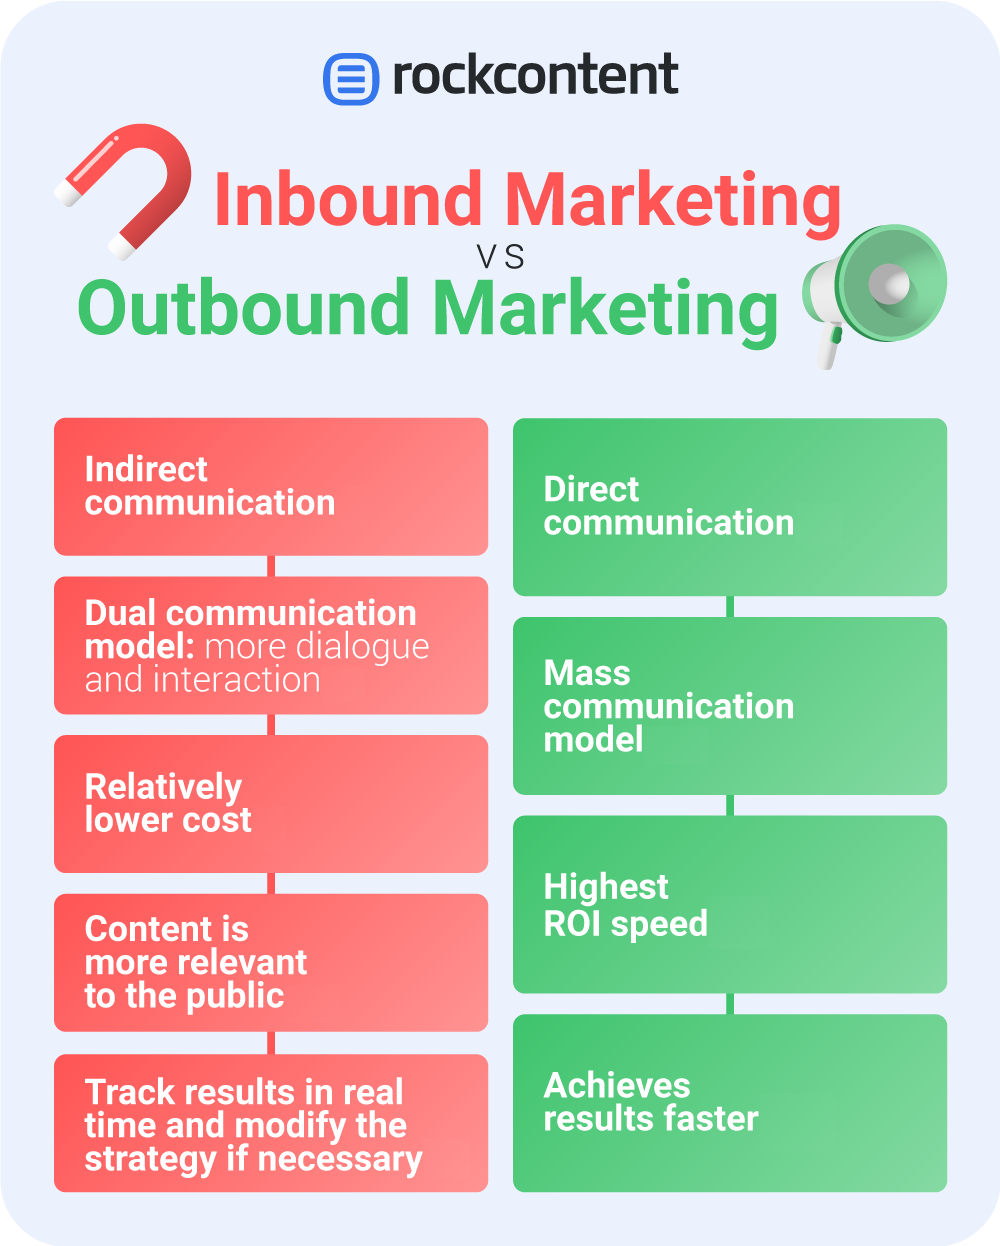 Infographic with the differences between Inbound and Outbound Marketing